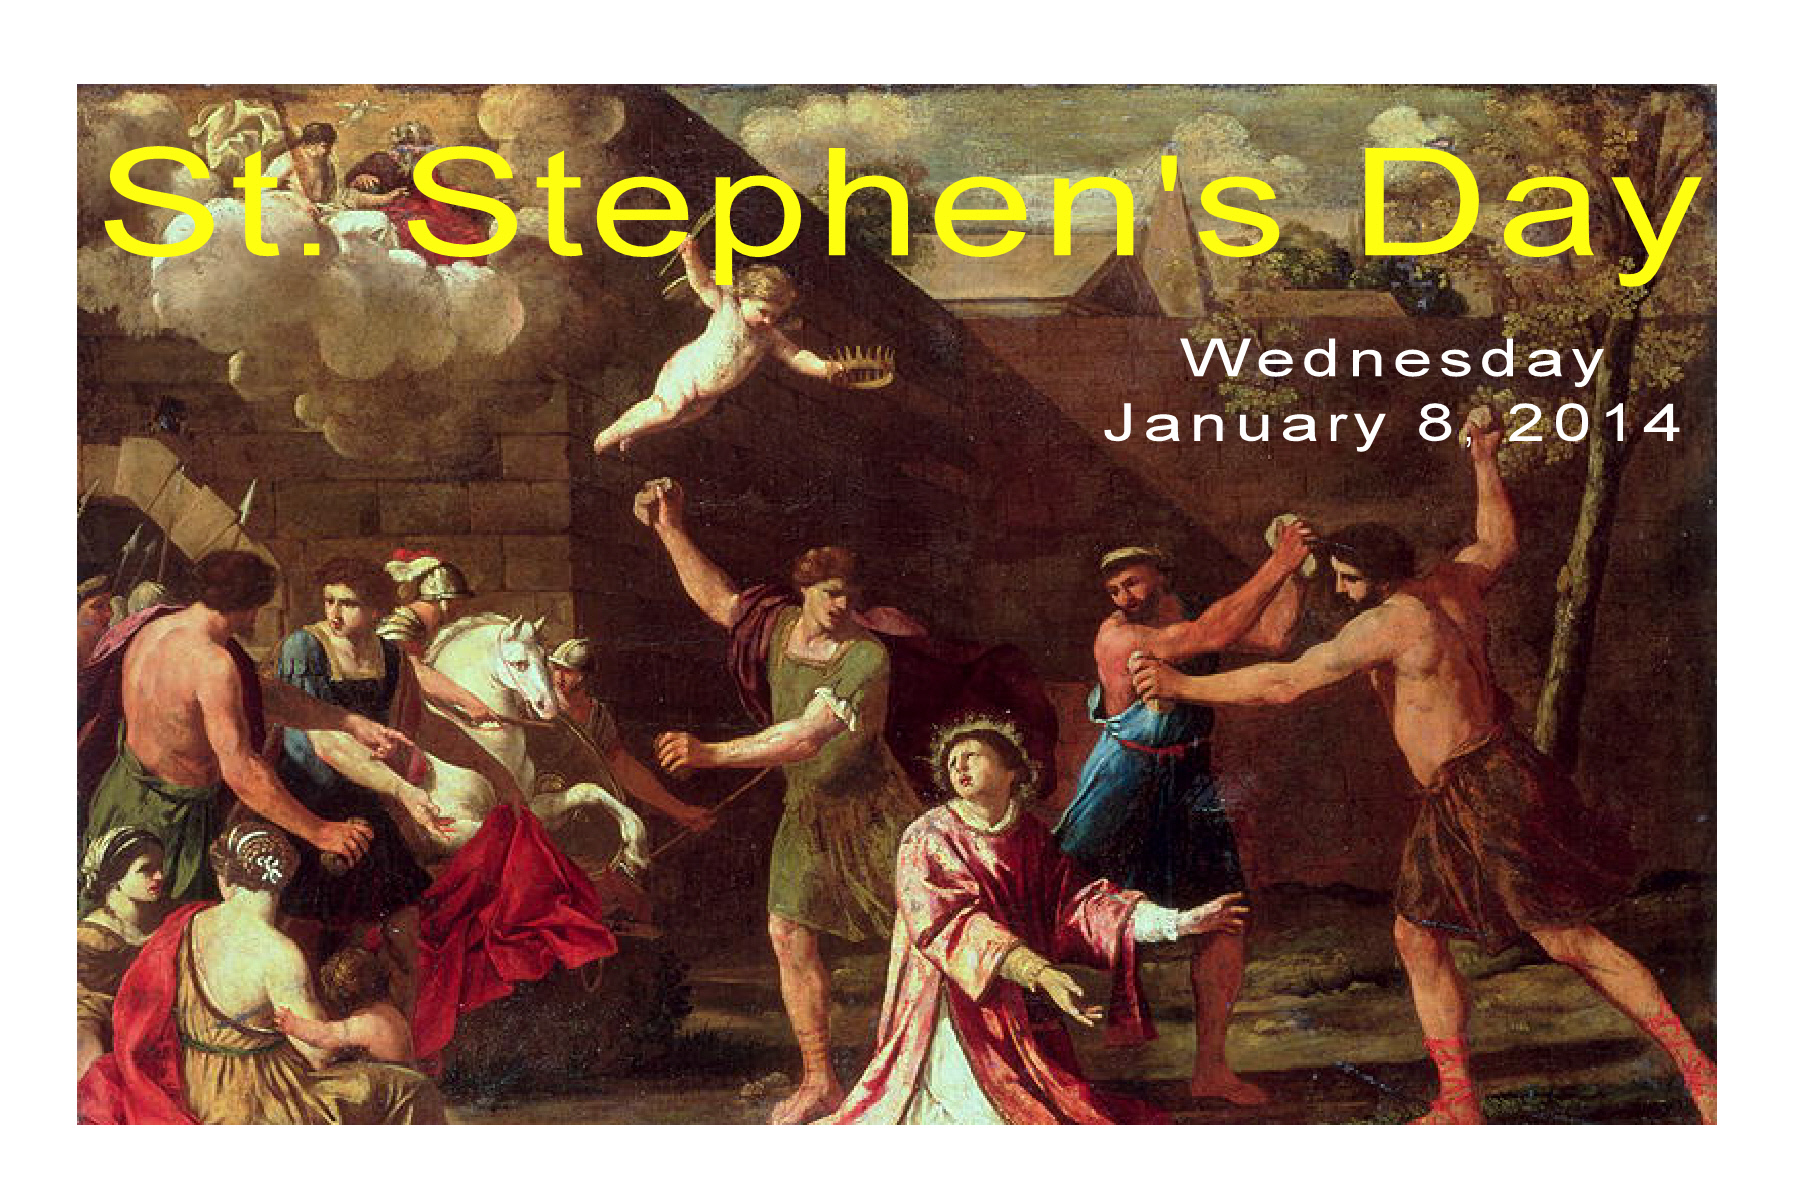 St. Stephen's Day